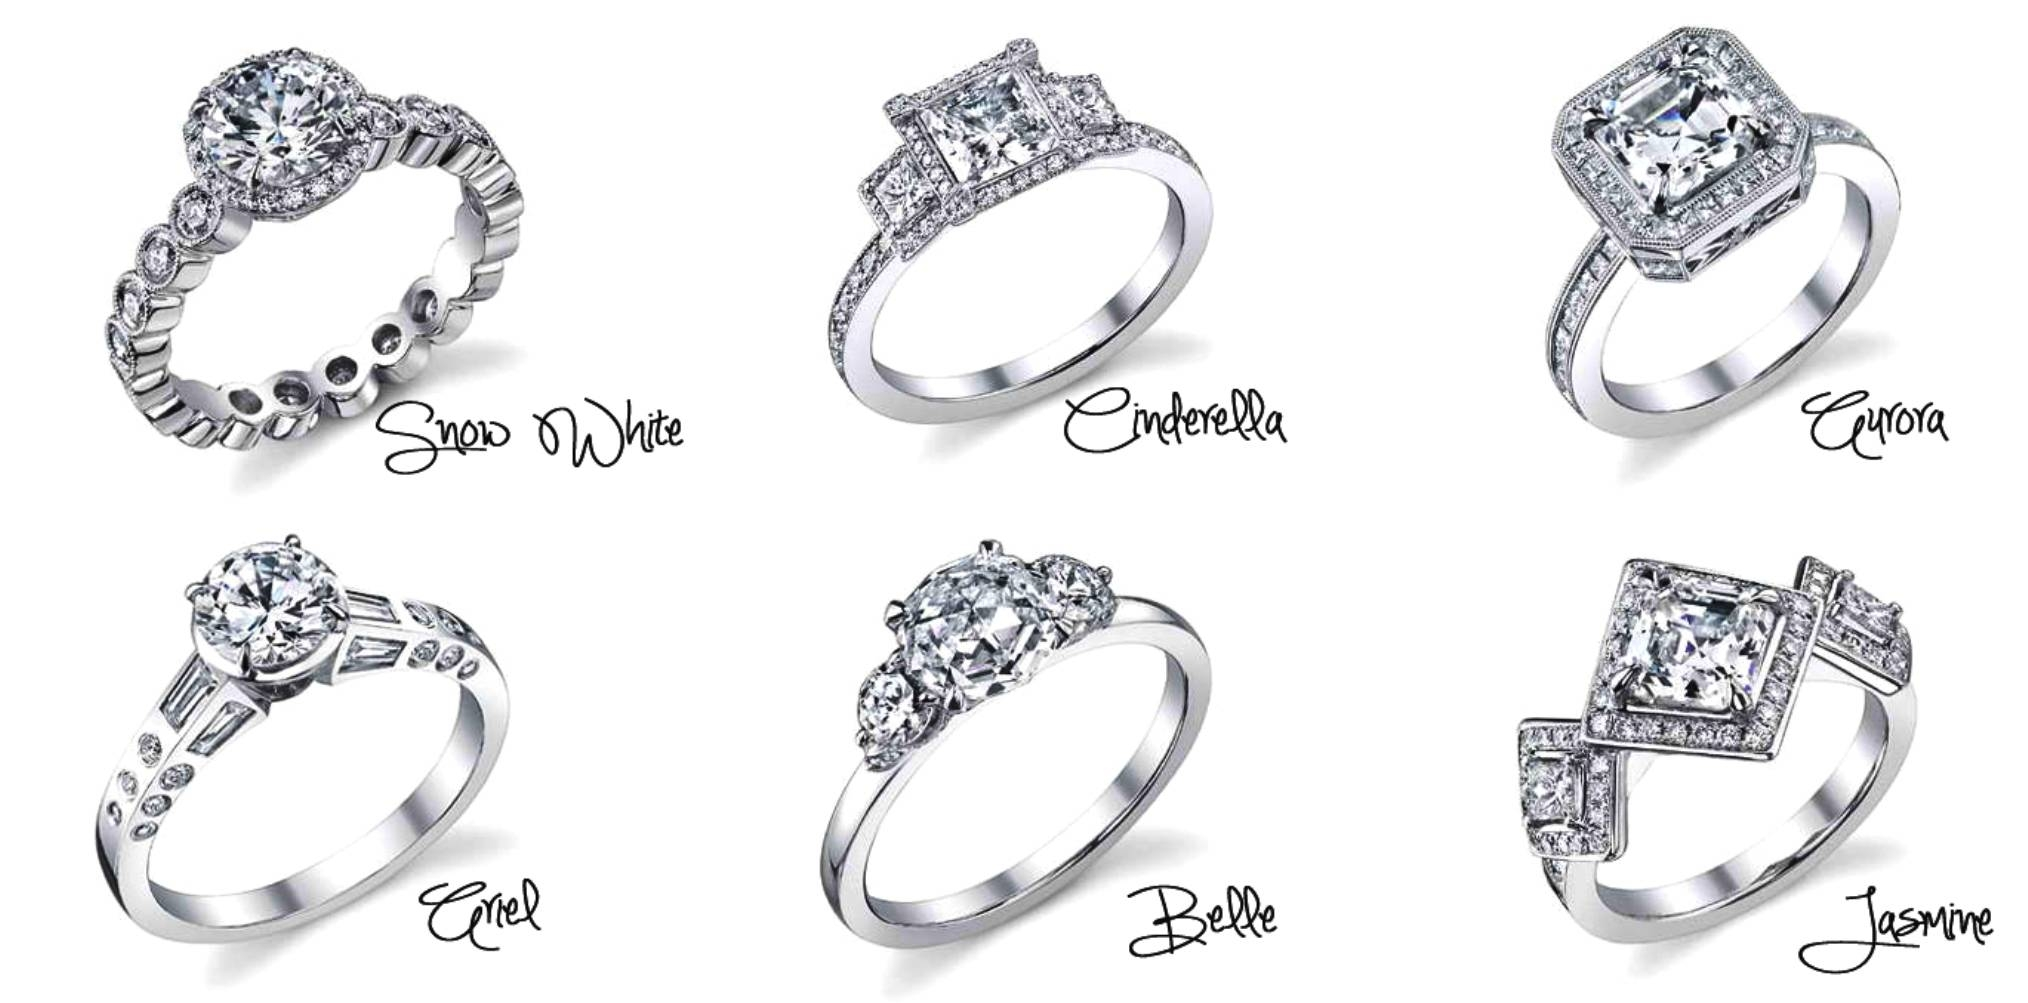 Disney Princess Themed Engagement Rings